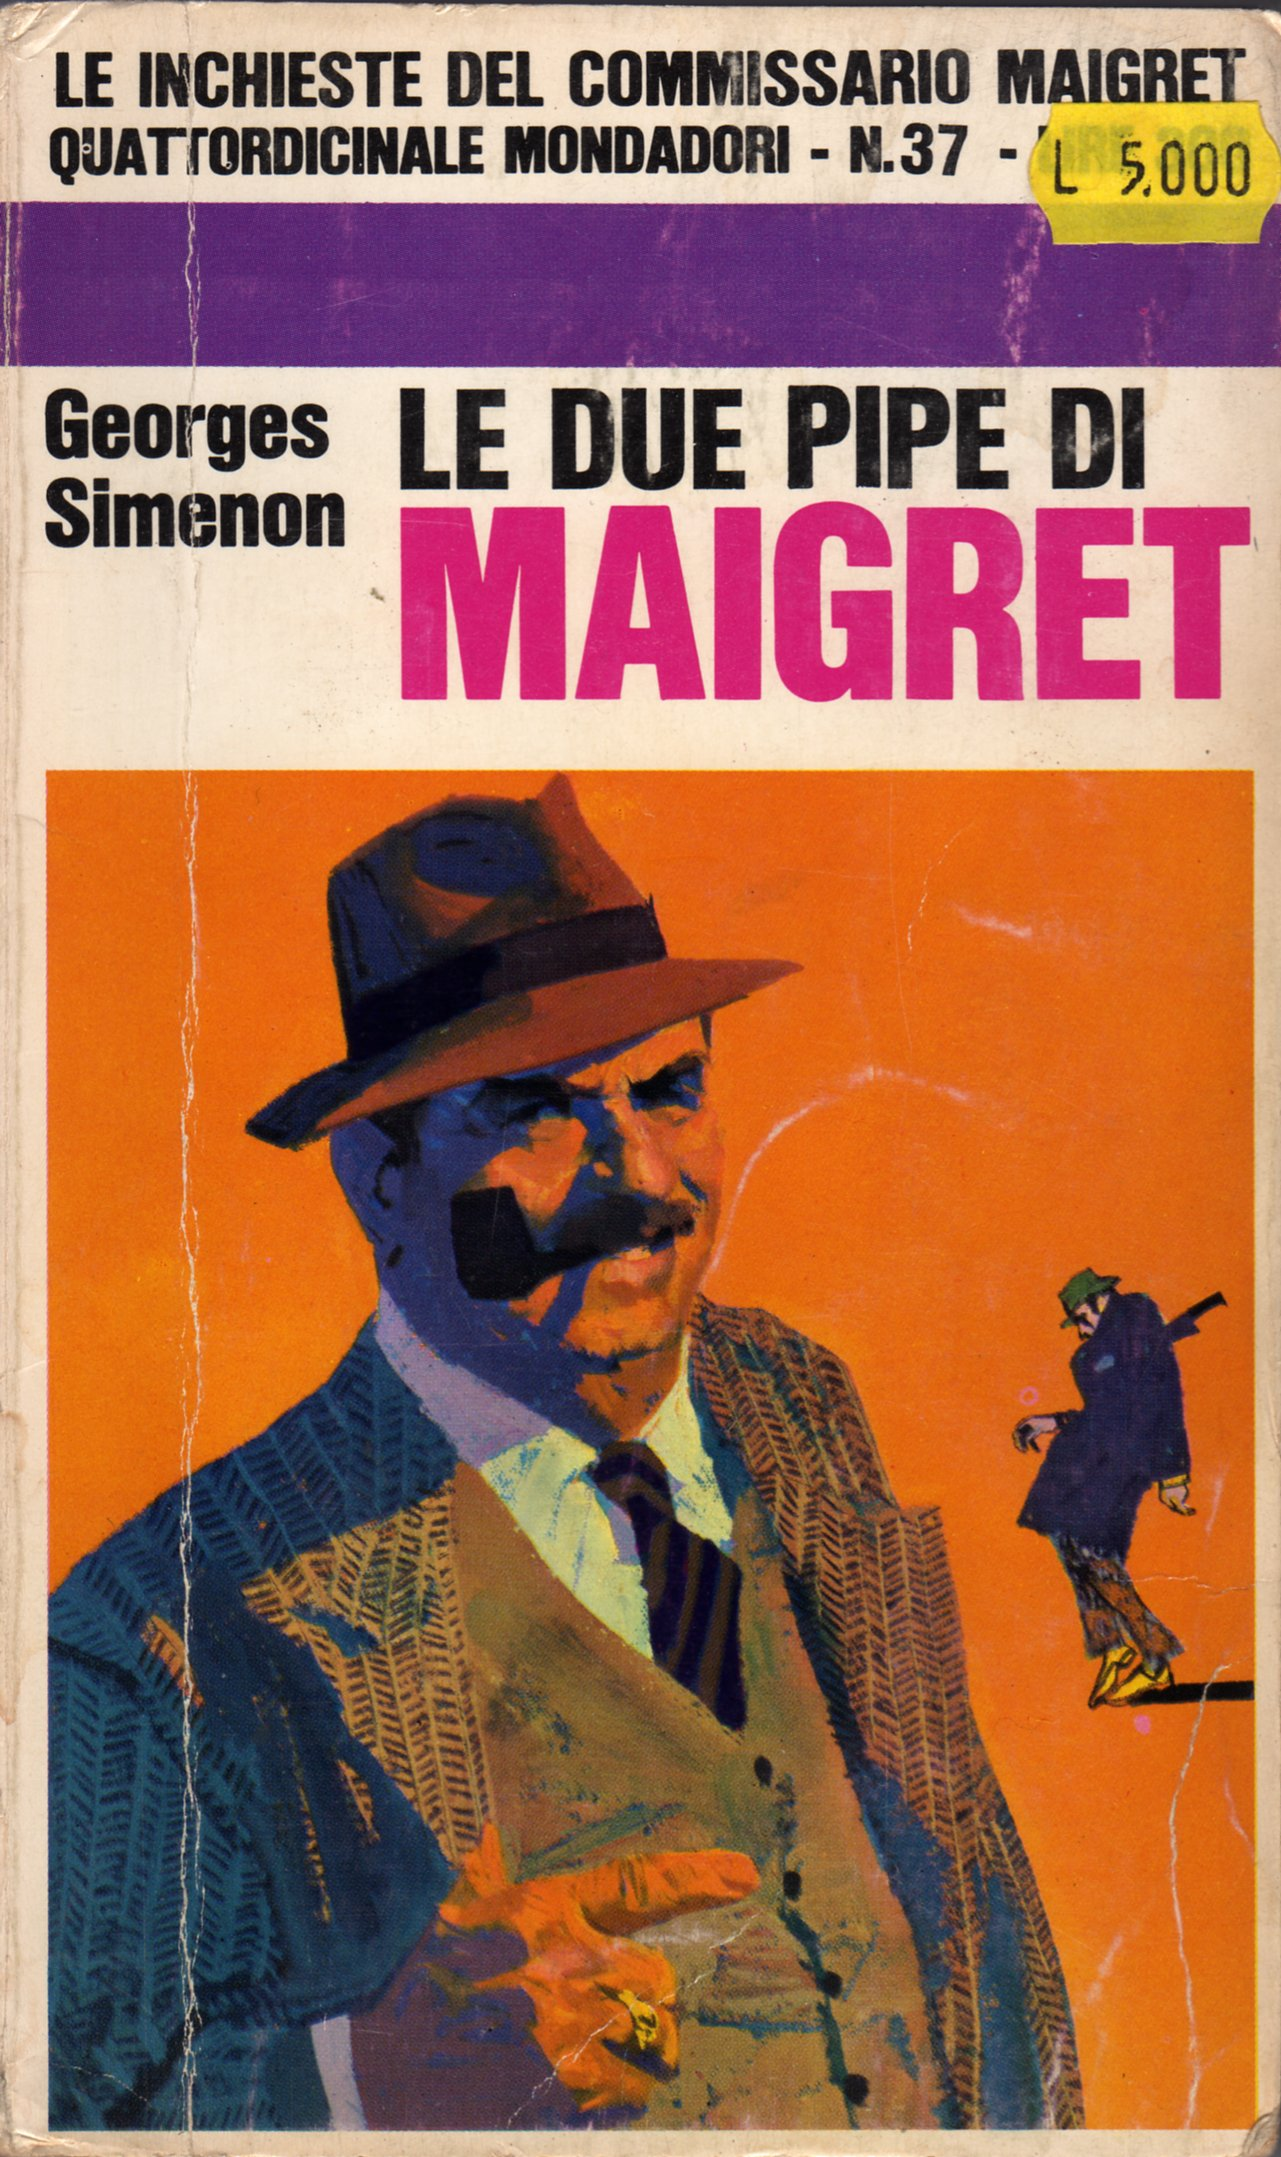 Le due pipe di Maigret